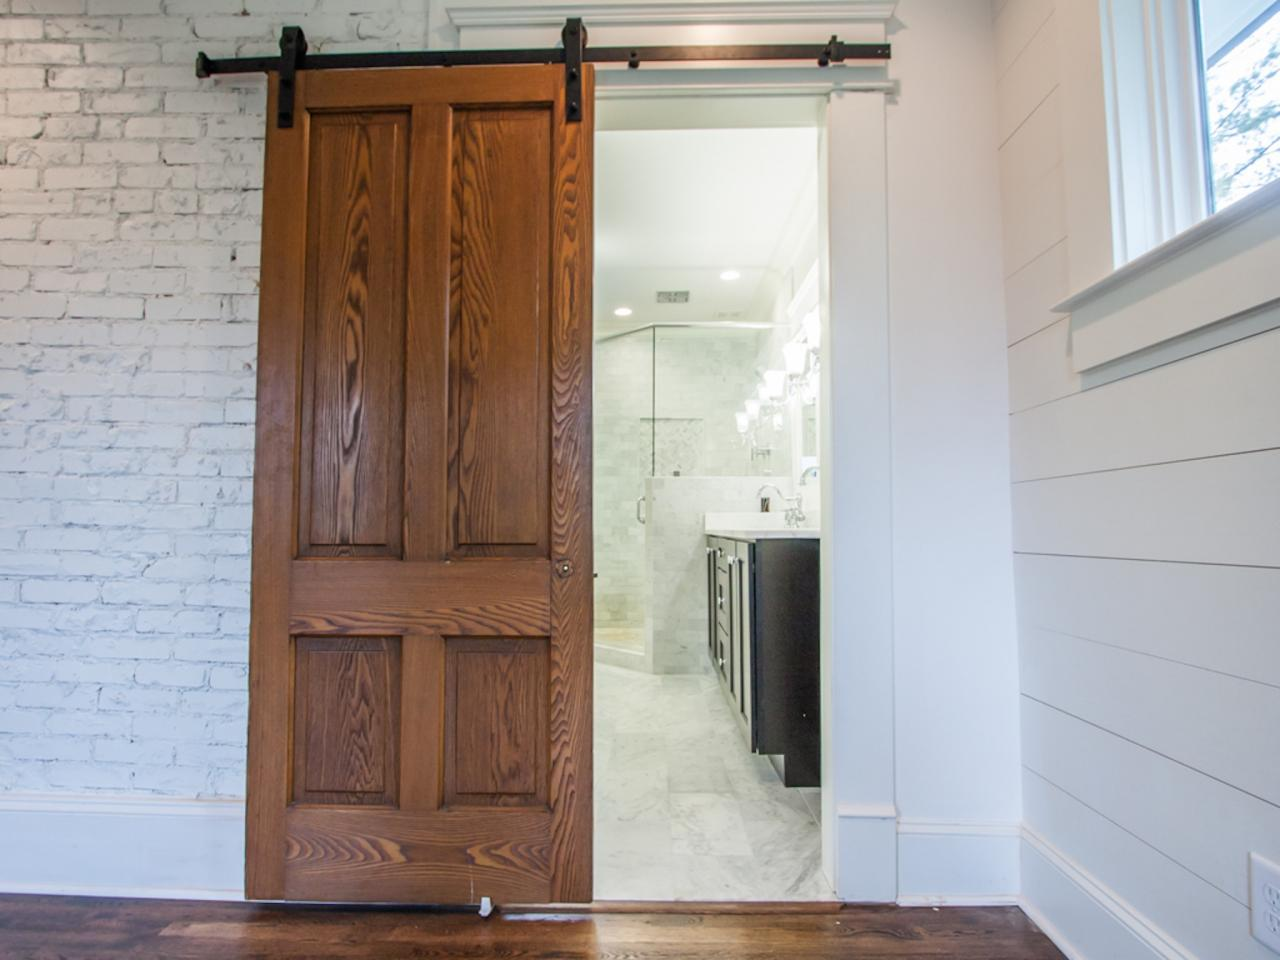 How To Install Barn Doors Diy Network Blog Made